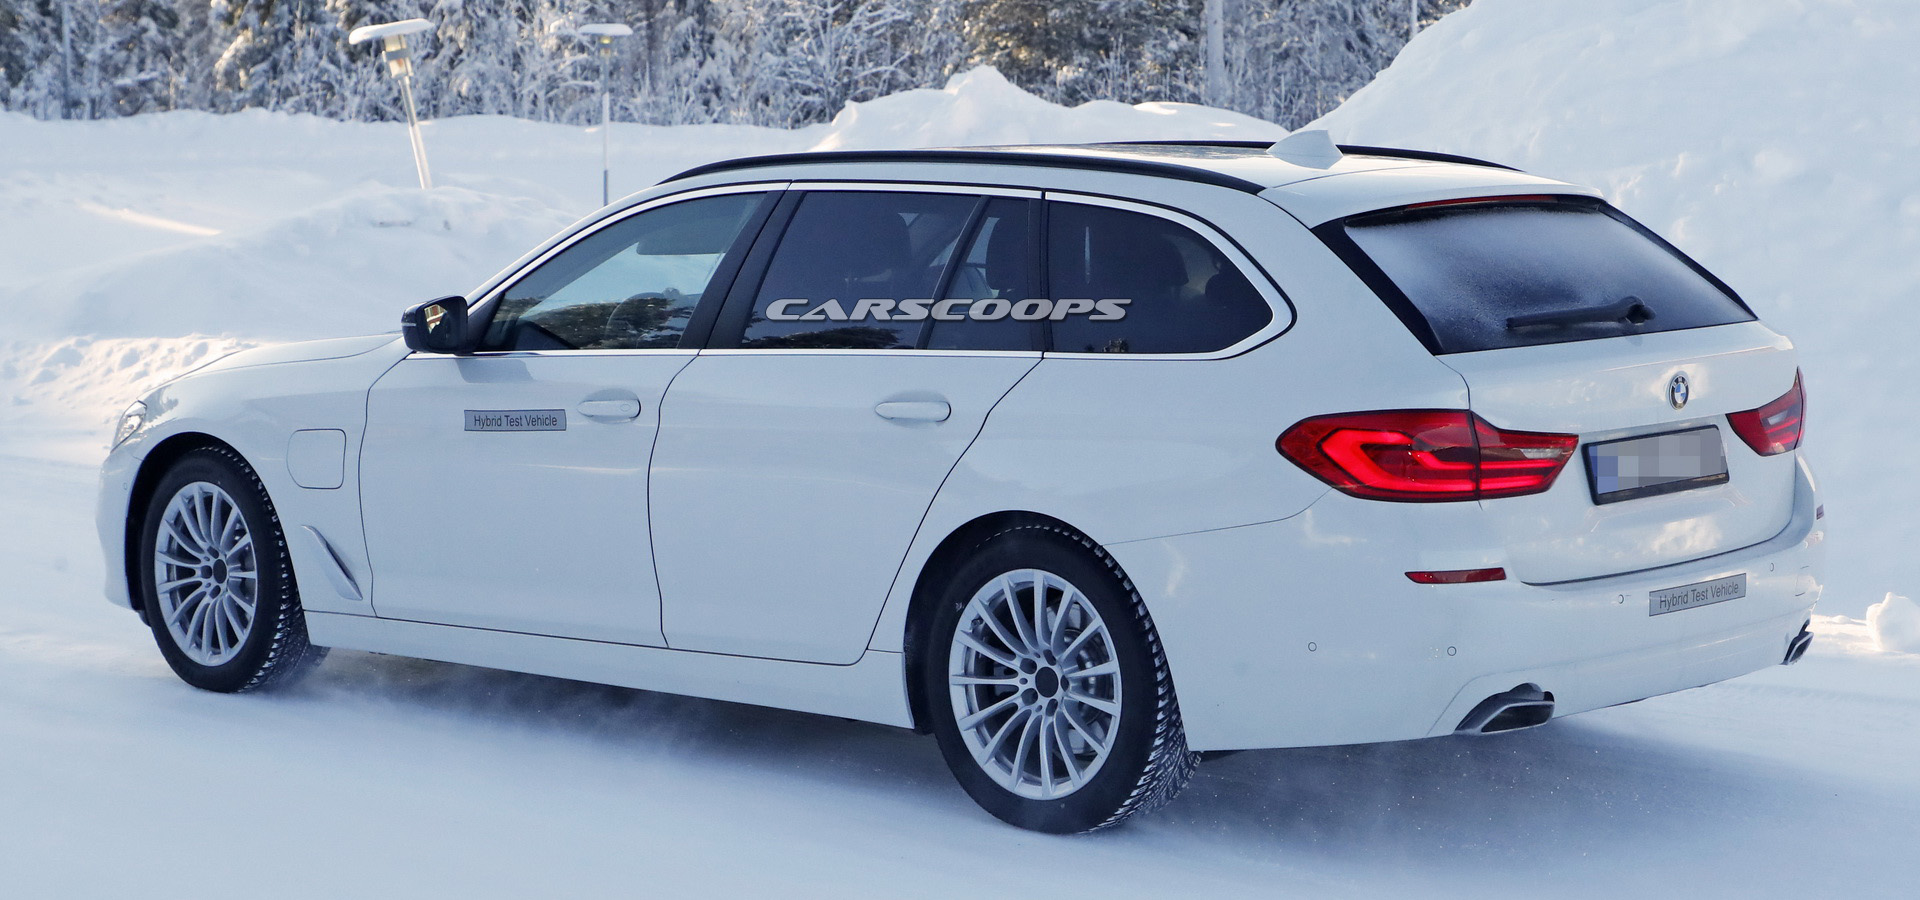 Bmw Preparing 530e Iperformance Touring Phev For 2019 Release But